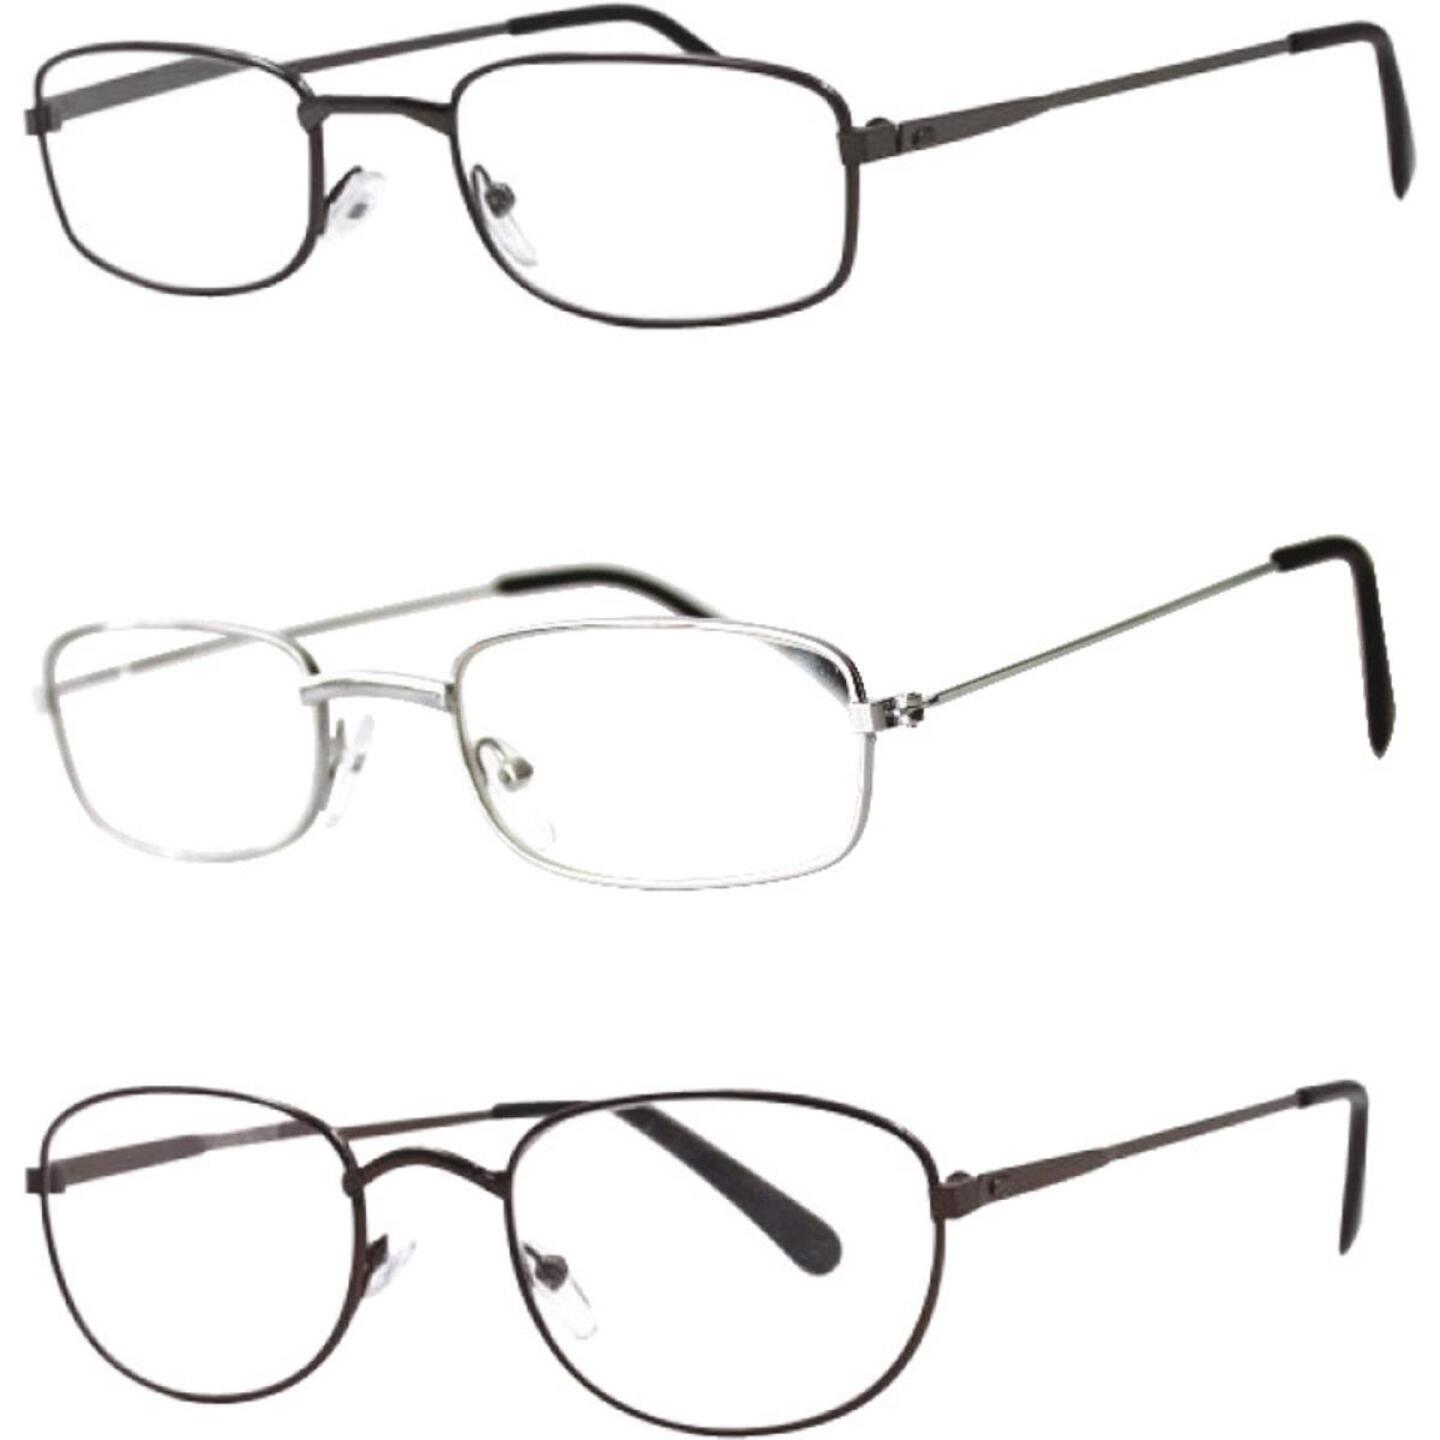 Axiom International 1.75 Diopter Metal Frame Reading Glasses Image 1